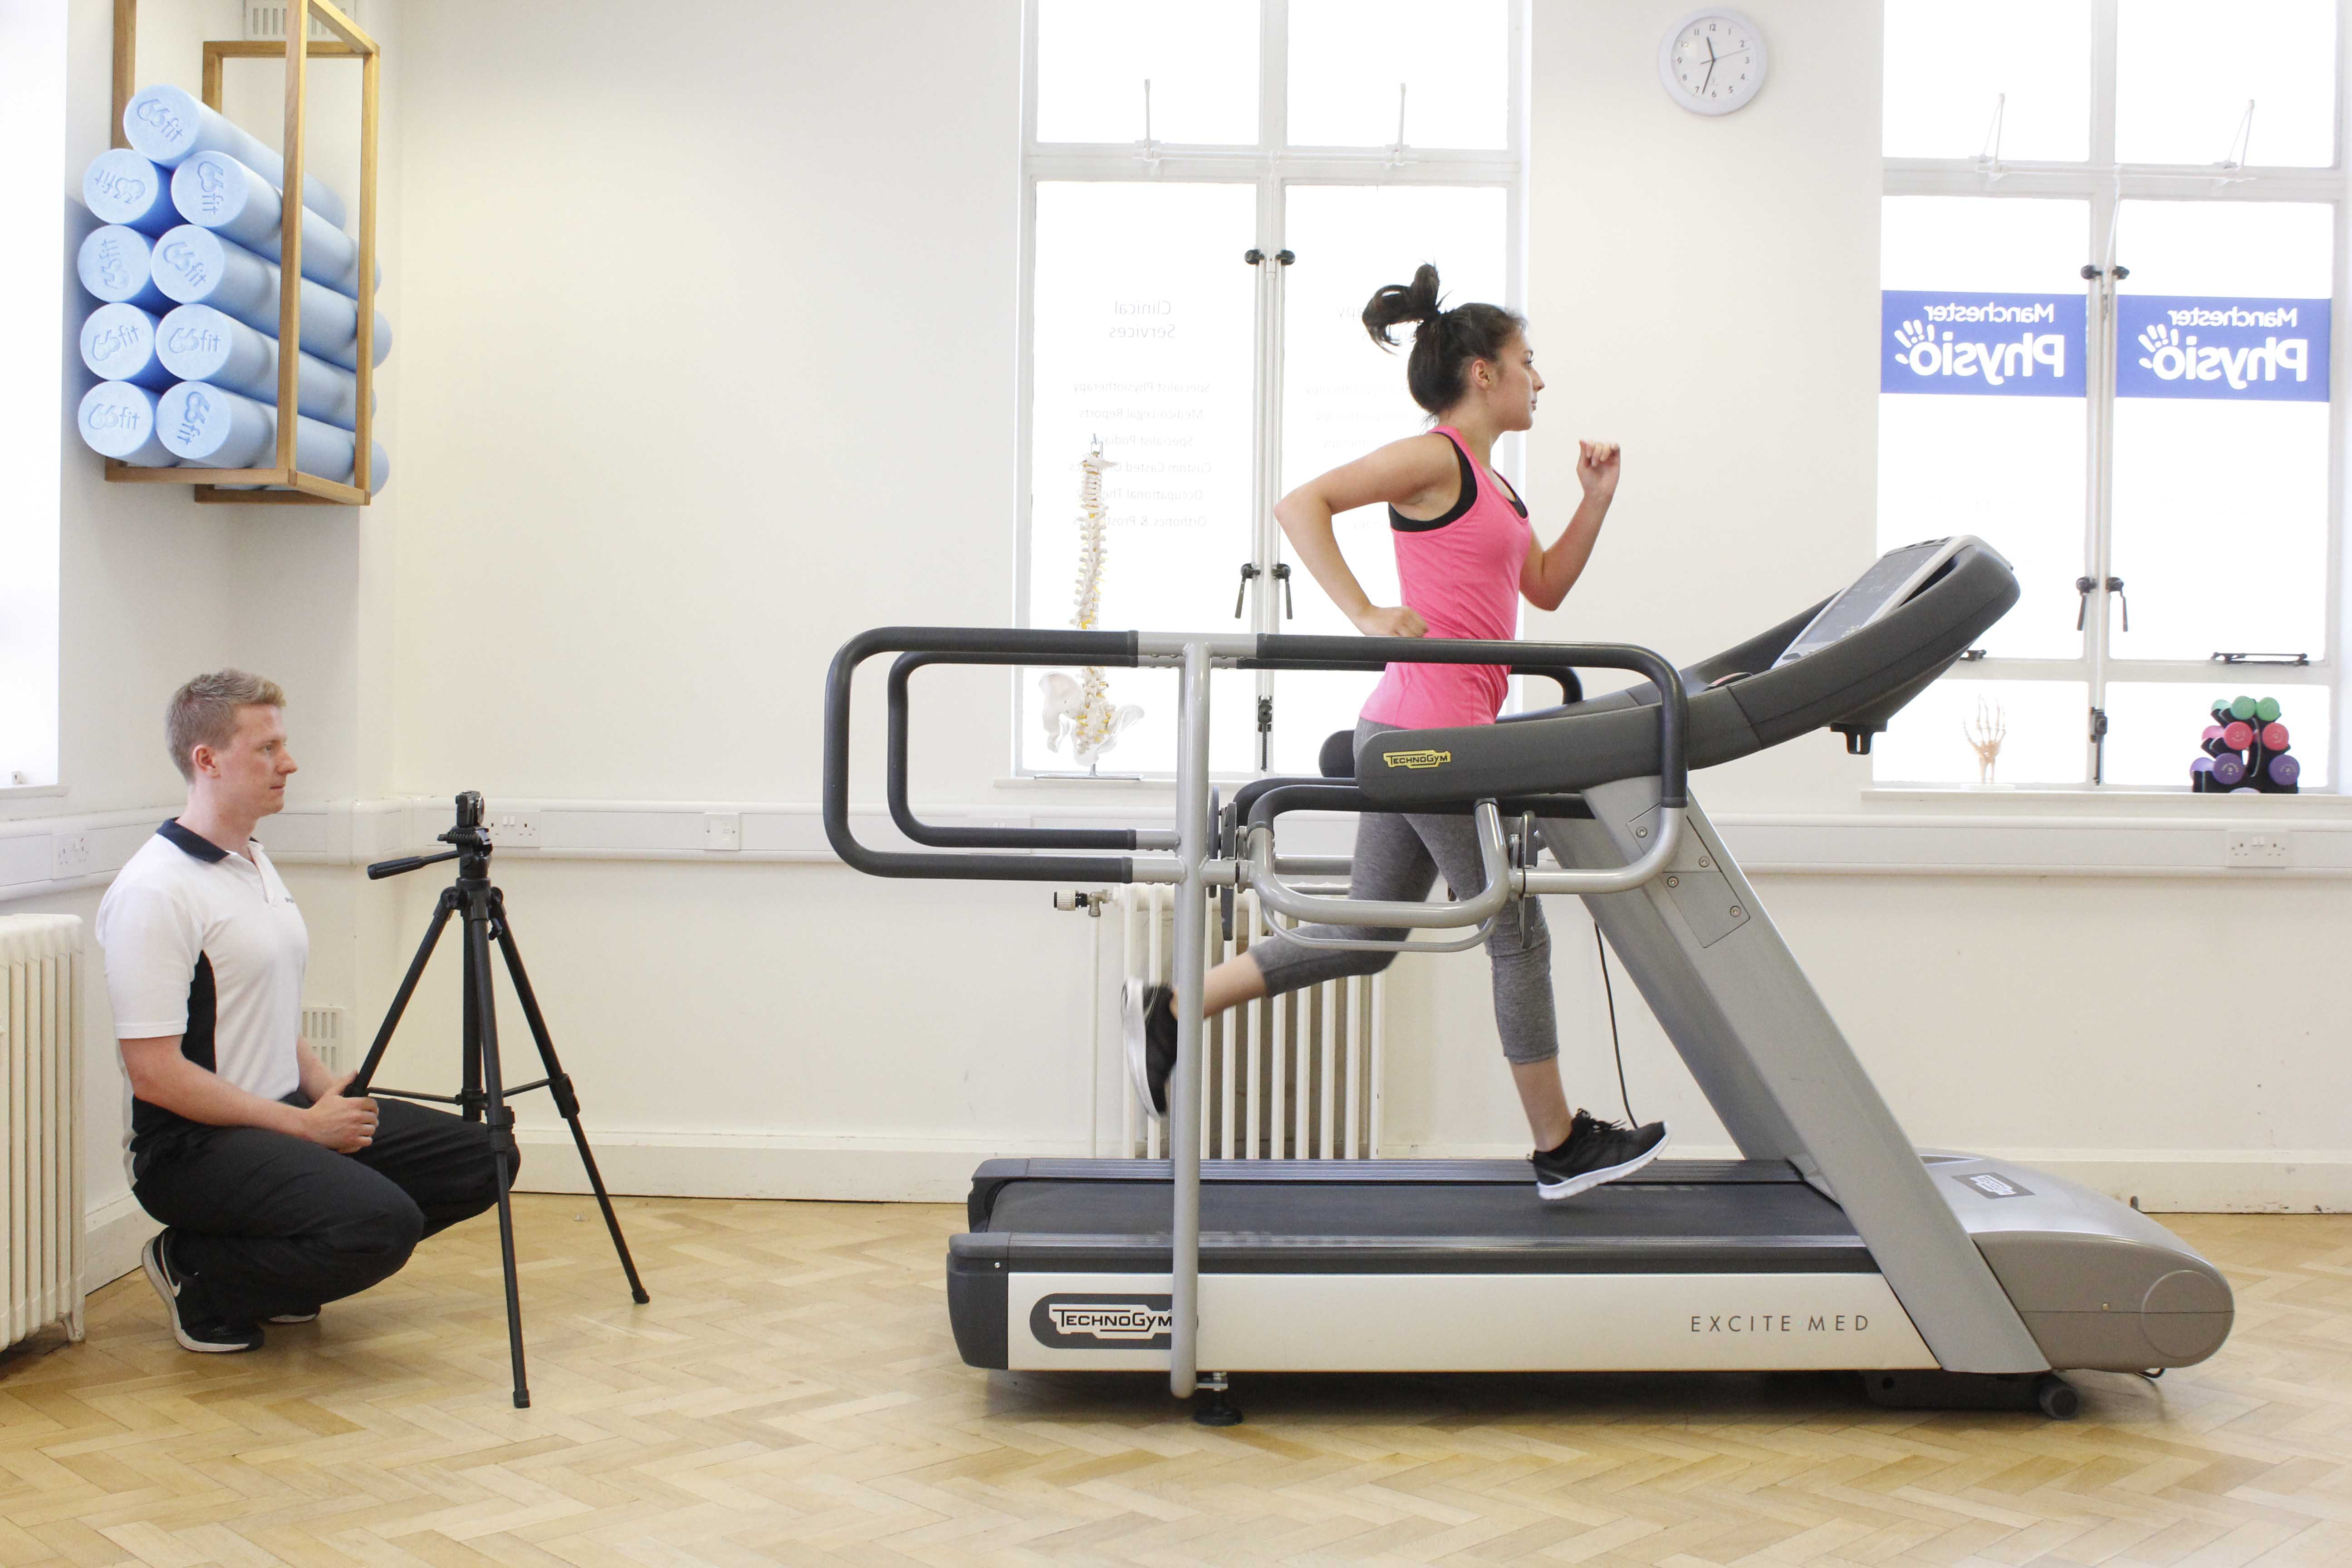 Biomenchanical Assessment using video analysis and a specialist treadmill